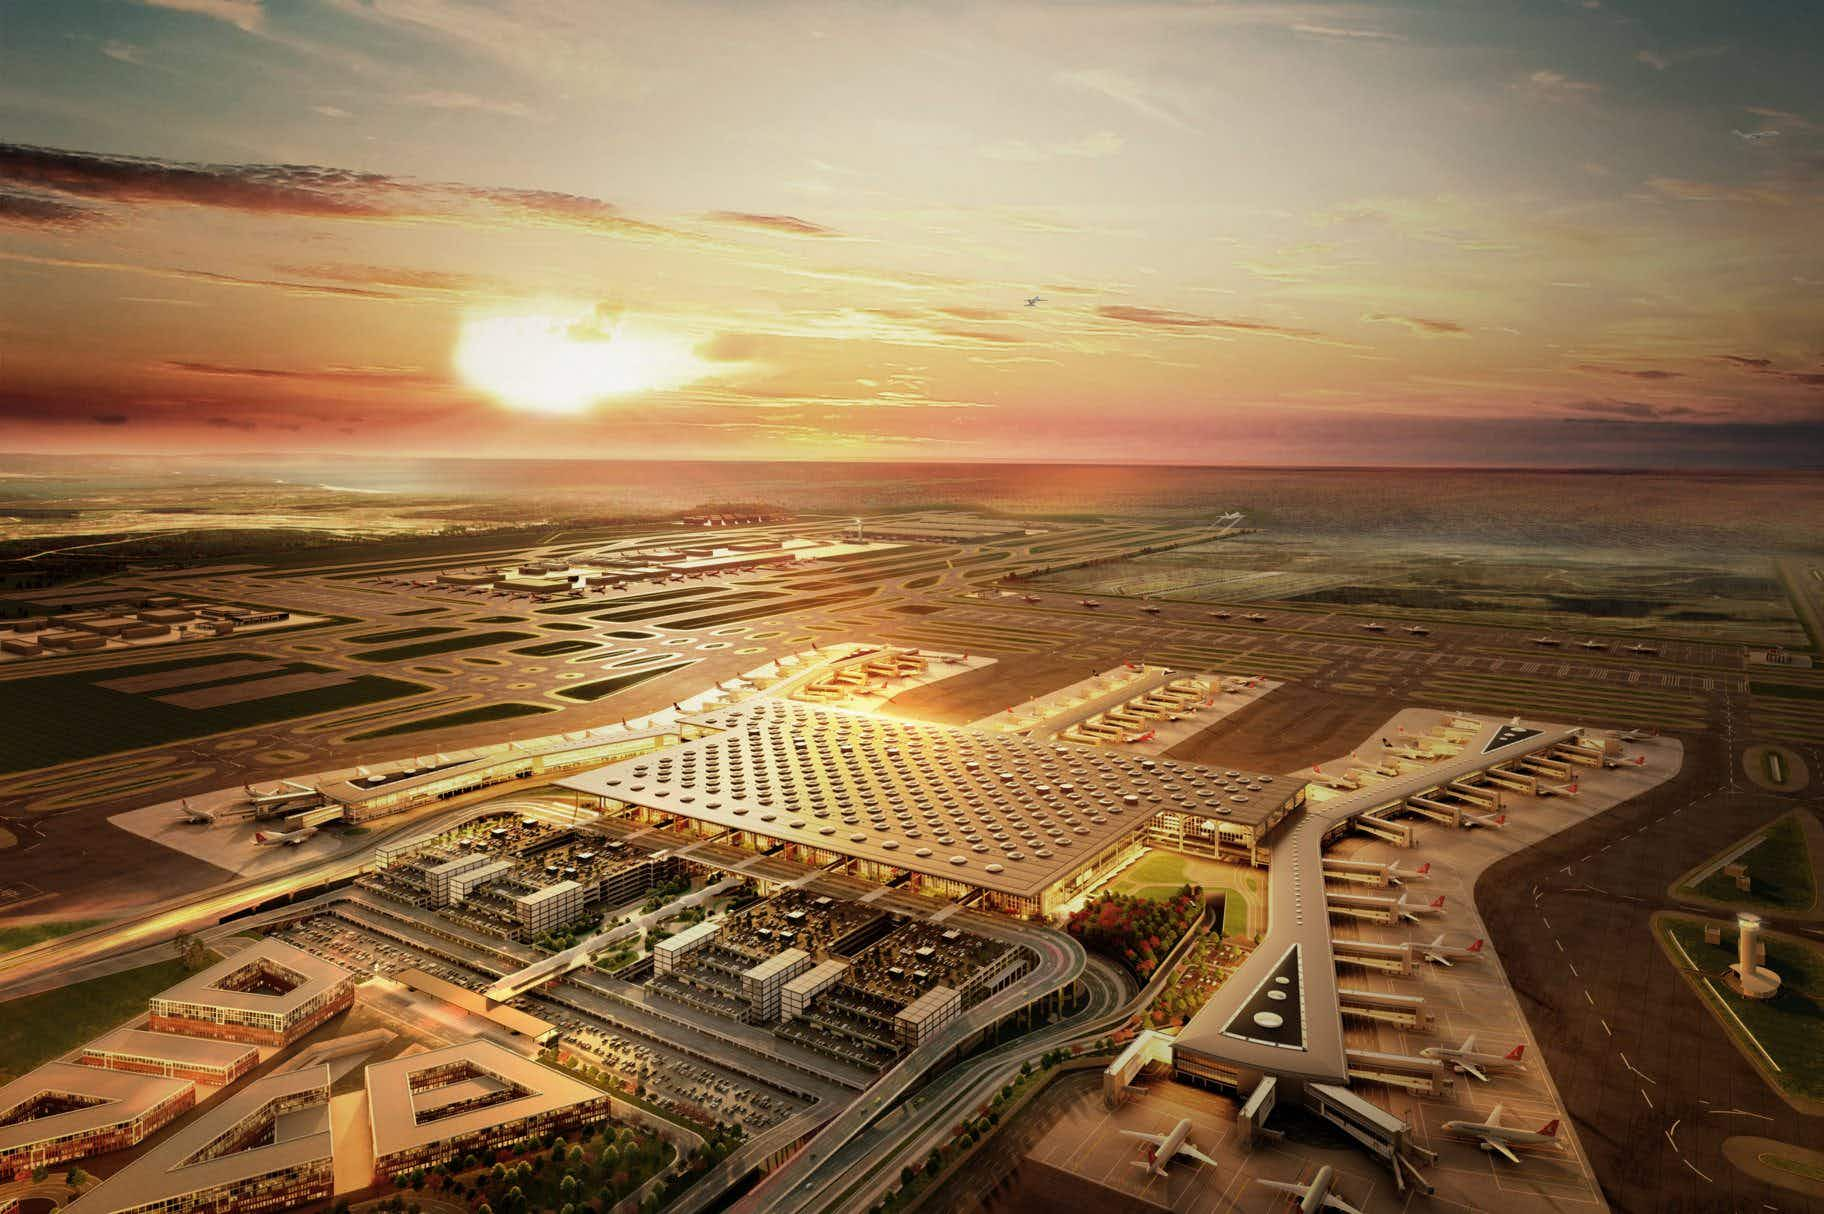 Istanbul's huge new airport opens in October and is expected to become the world's busiest airport